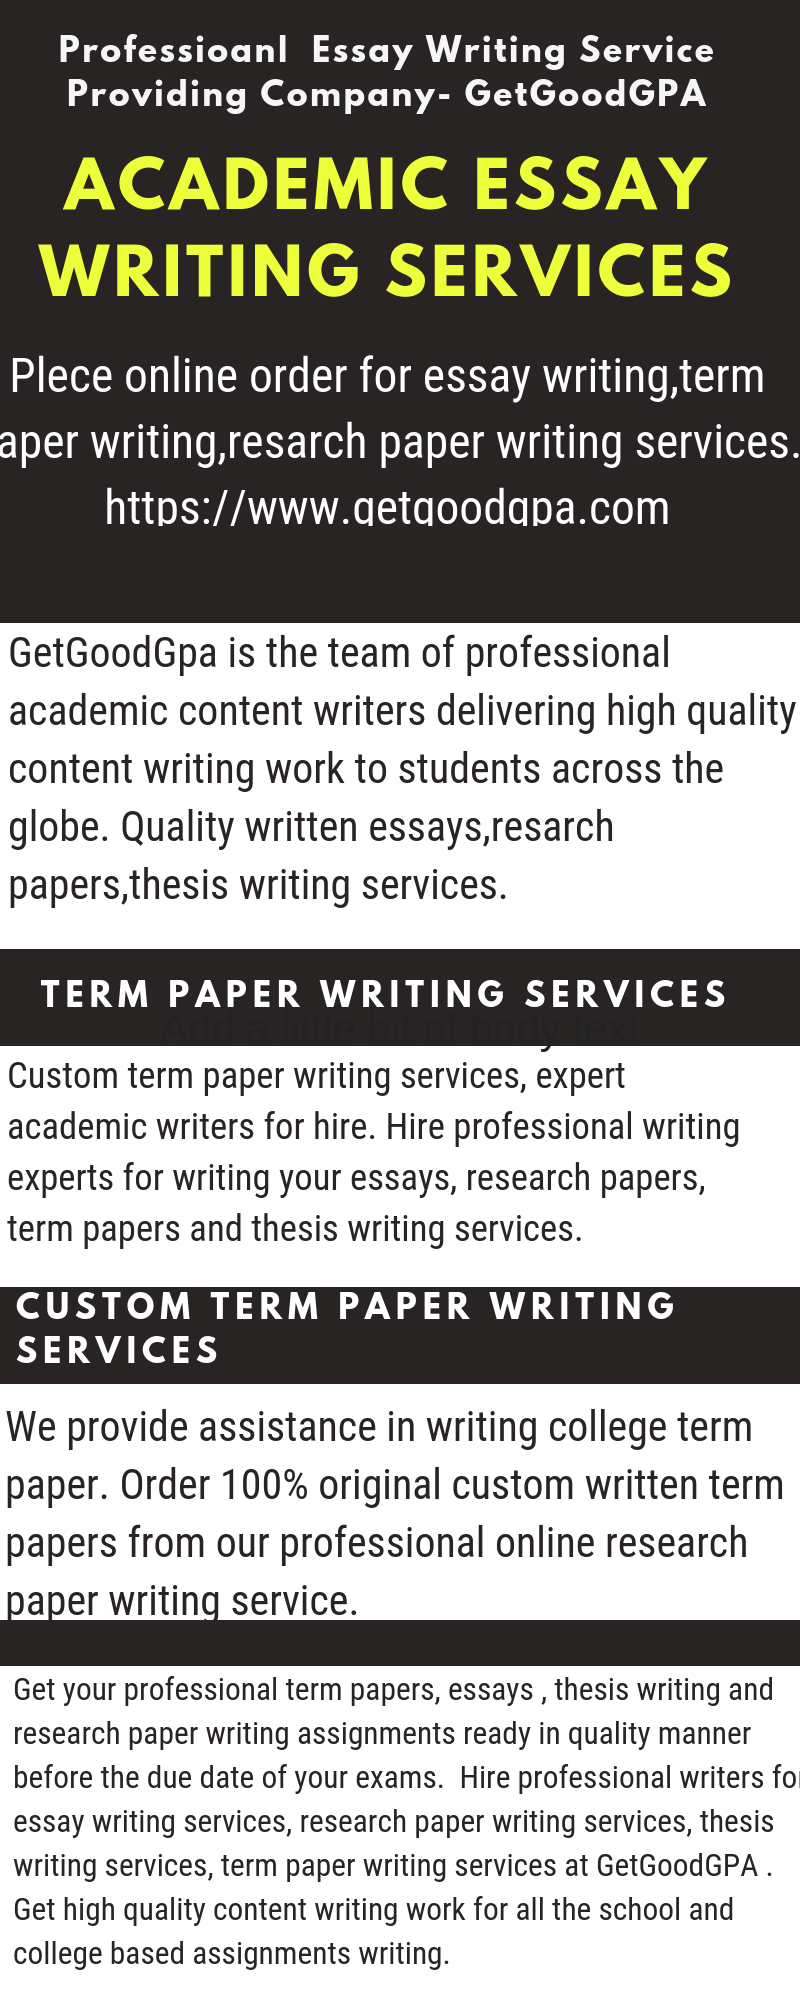 015 Research Paper Custom Striking Writers Writing Service Services Term Writer Full